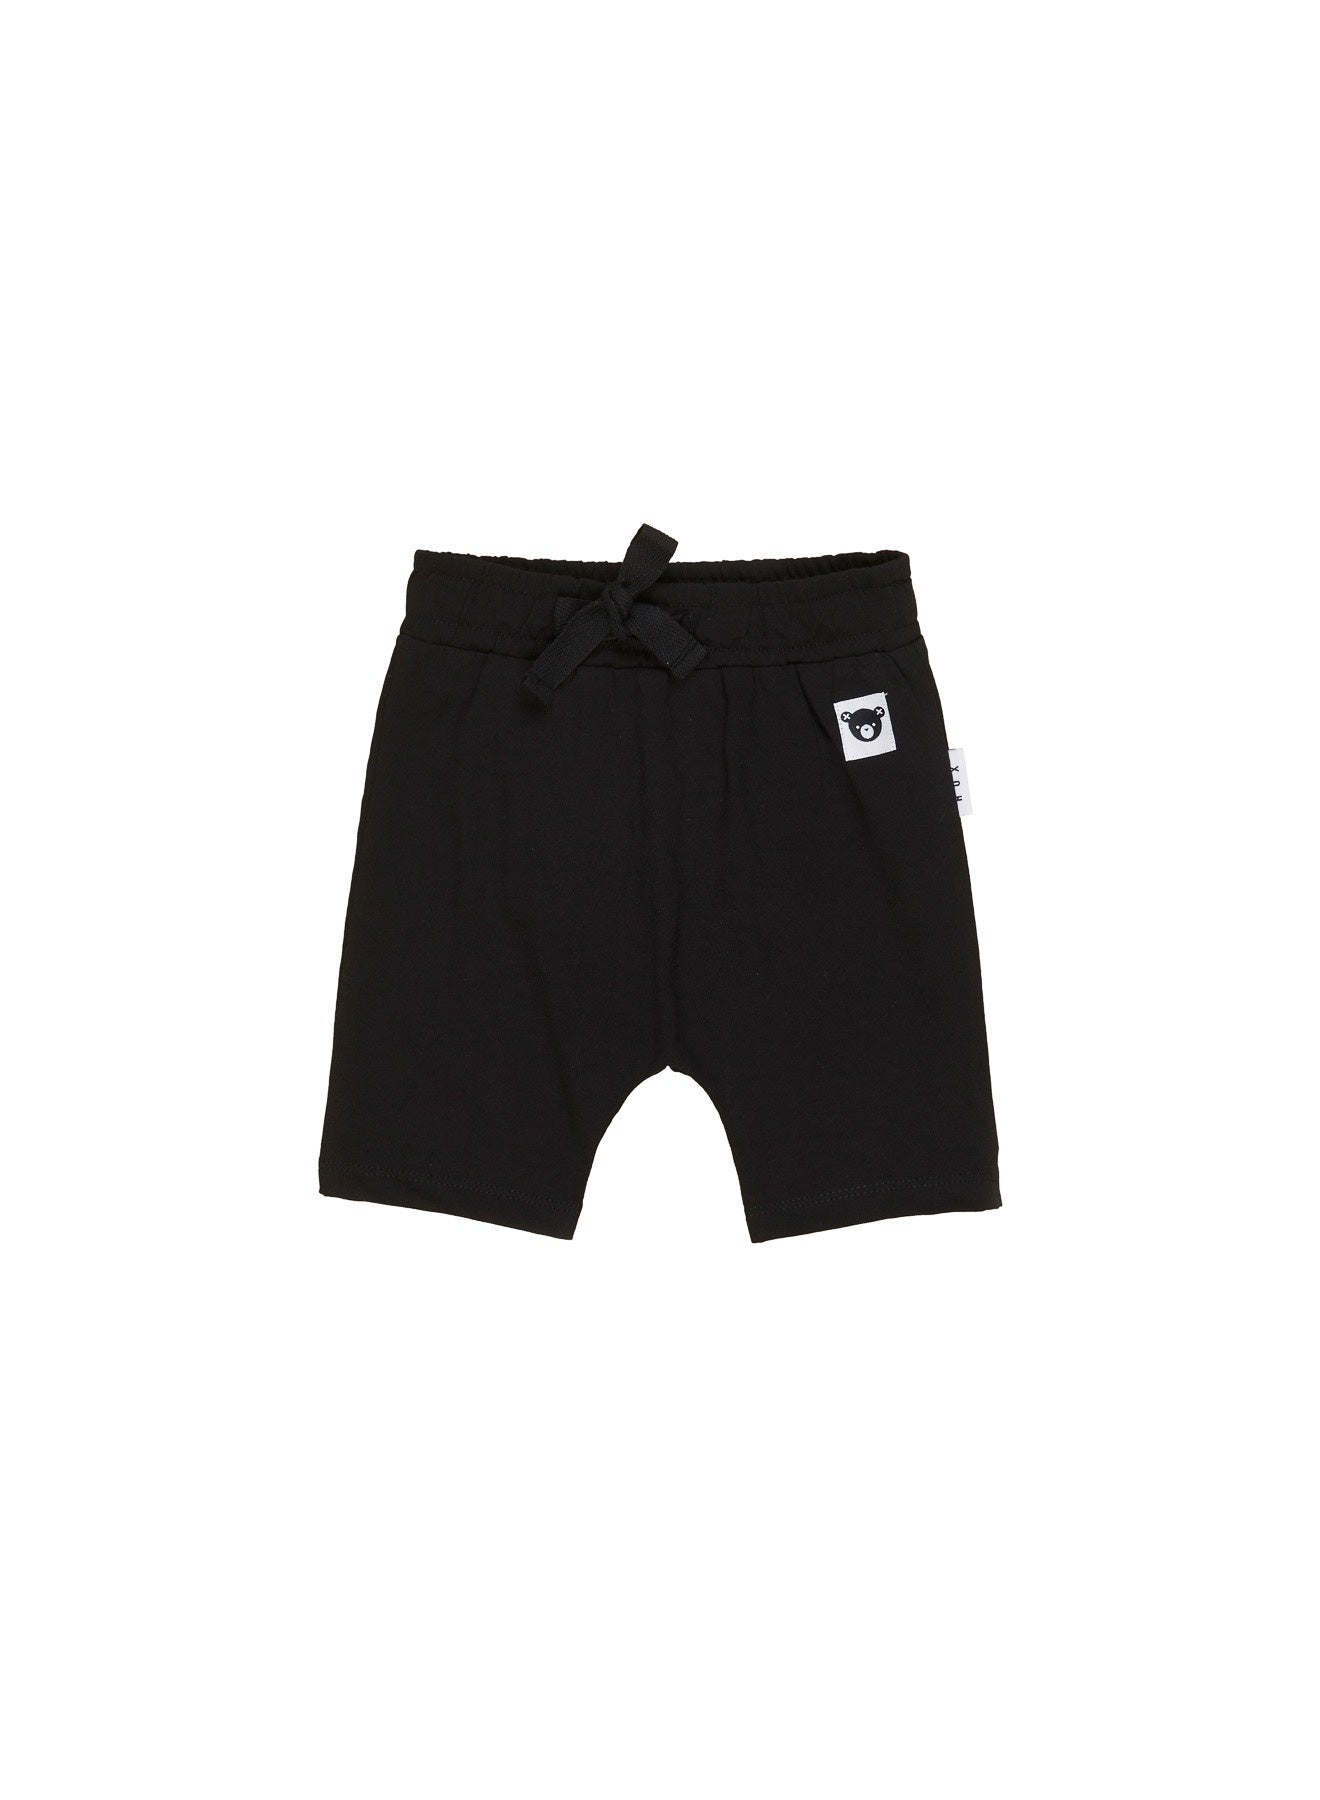 HUX BLACK SHORTS - KID